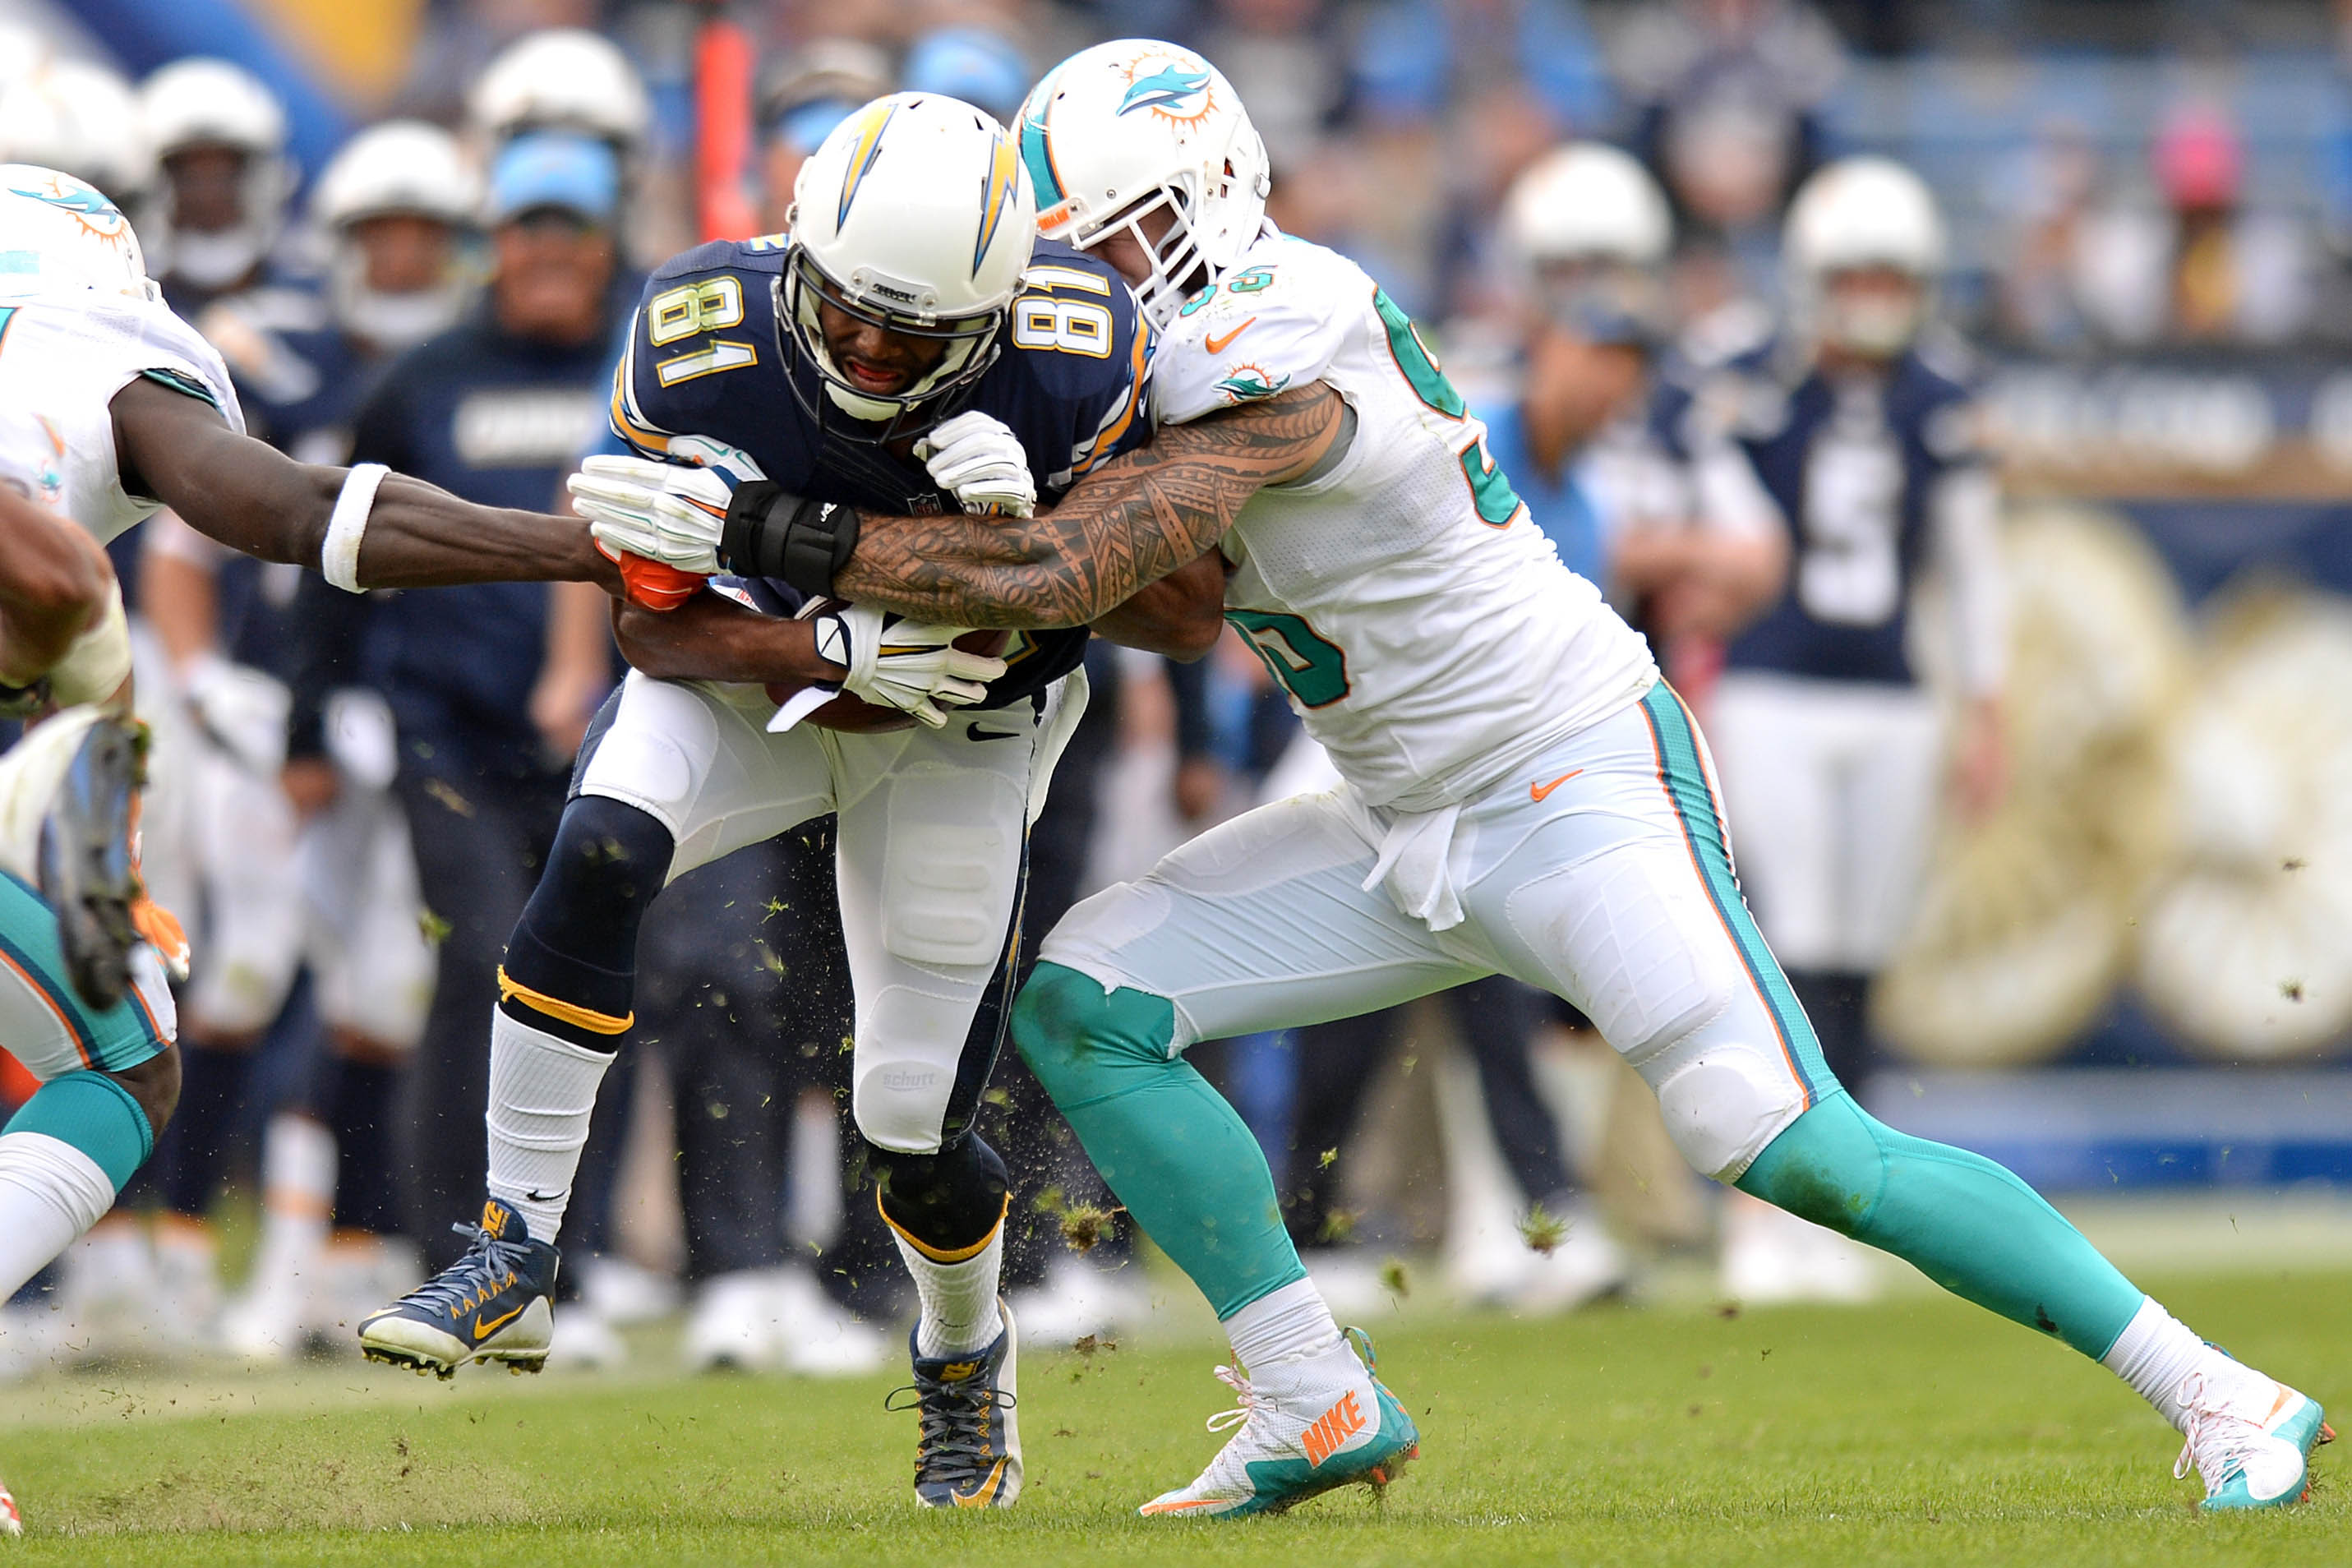 9008173-nfl-miami-dolphins-at-san-diego-chargers